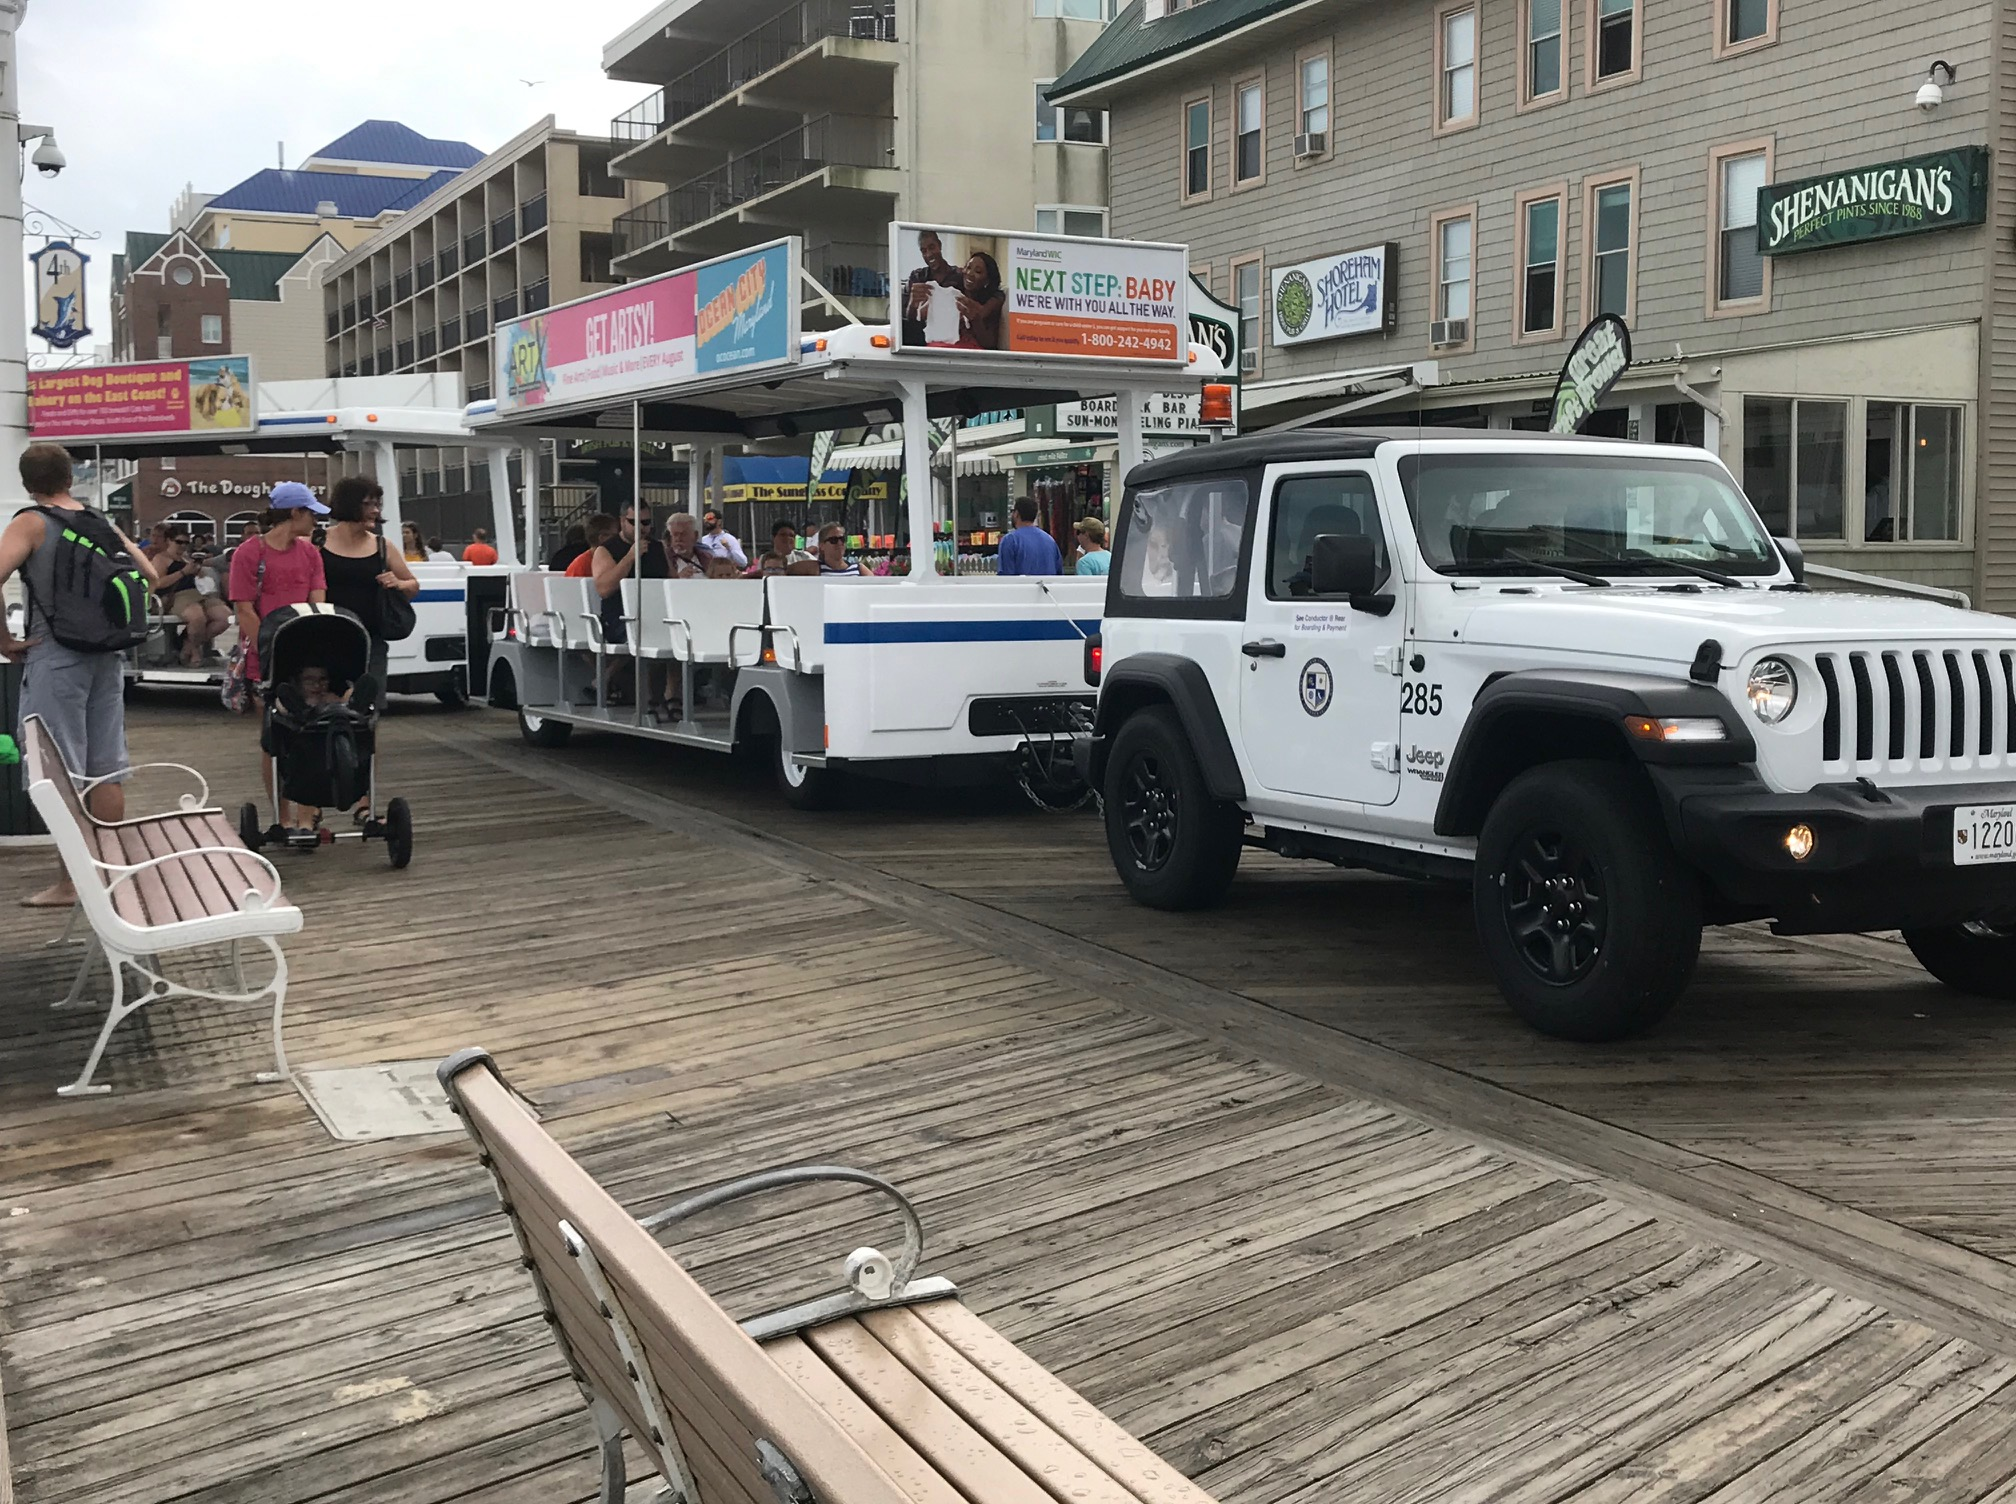 Committee Recommends No Boardwalk Tram This Summer